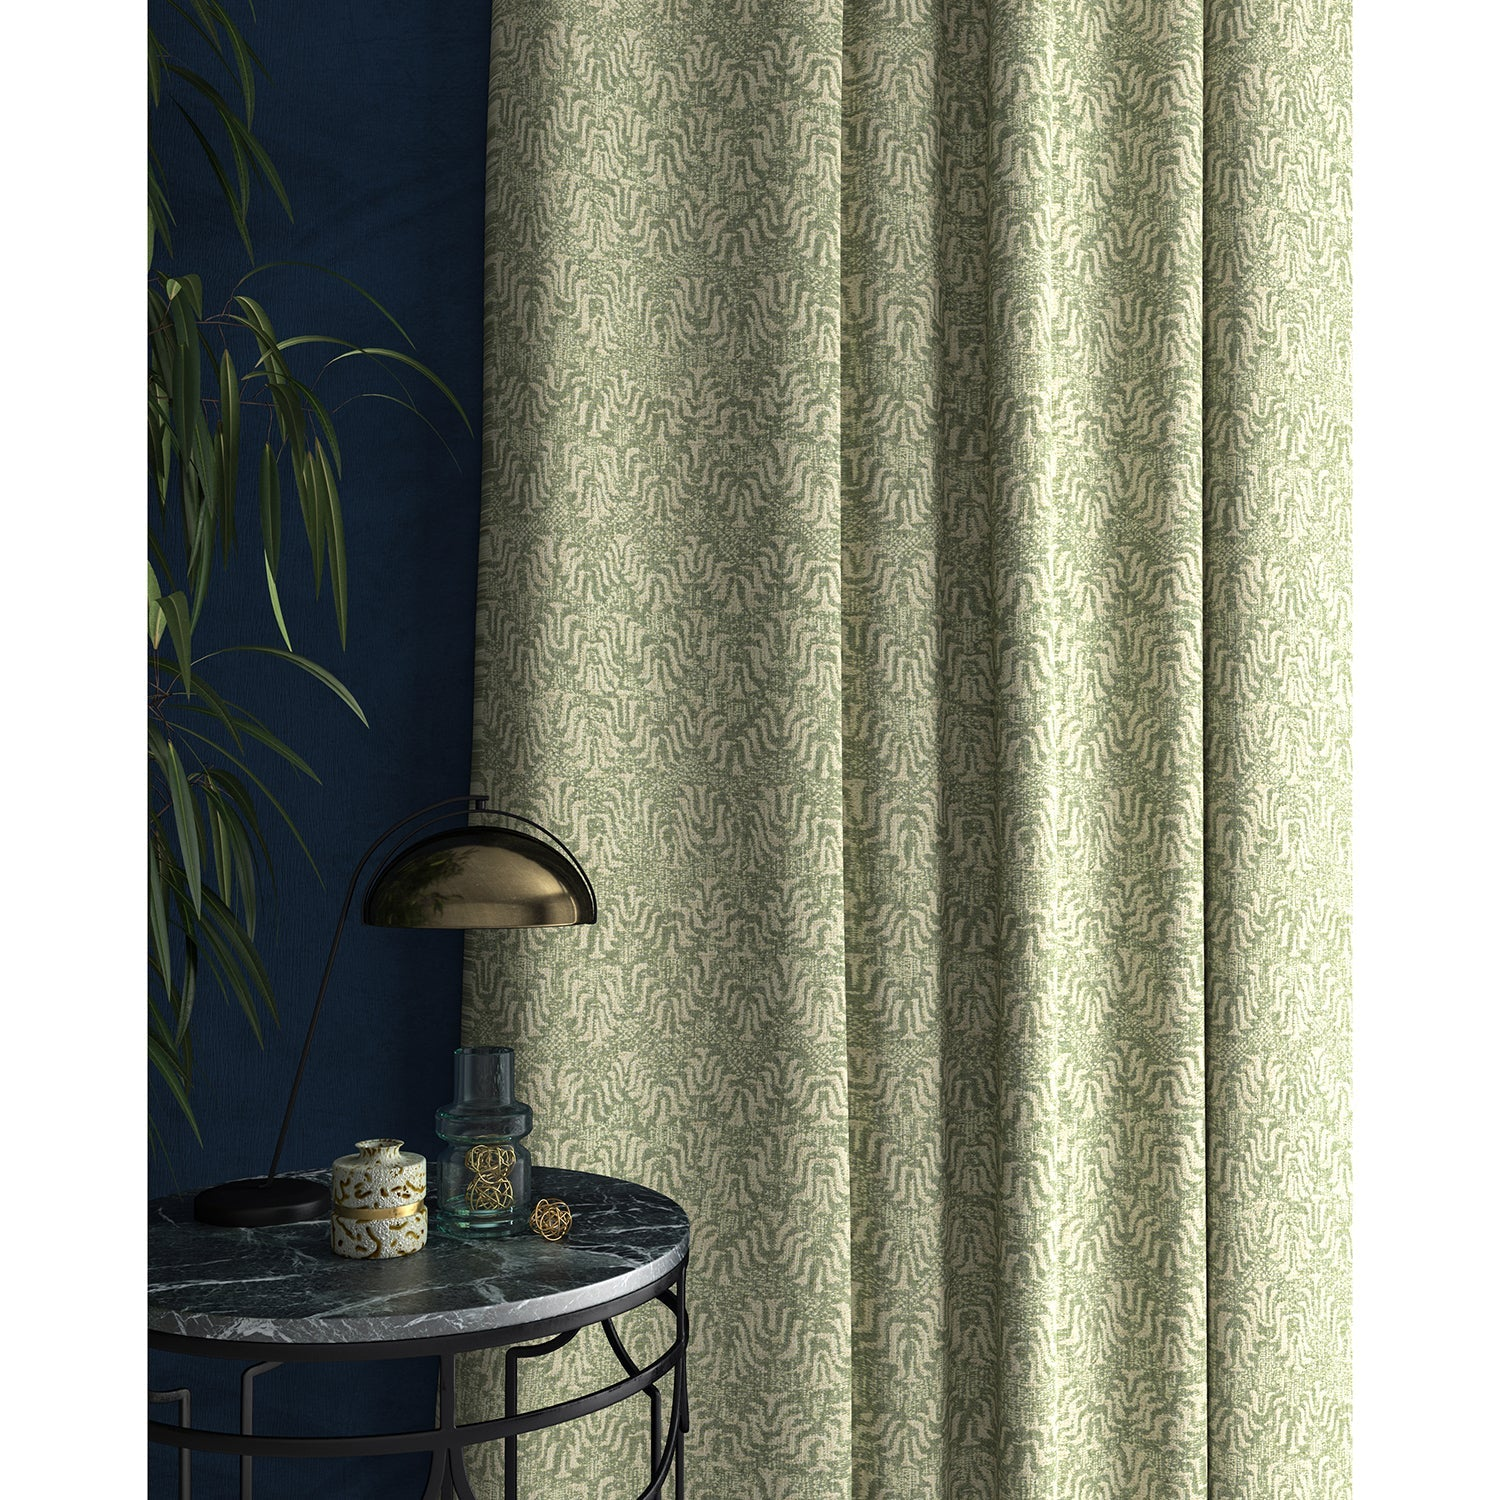 Curtain in a light turquoise and neutral jacquard weave fabric